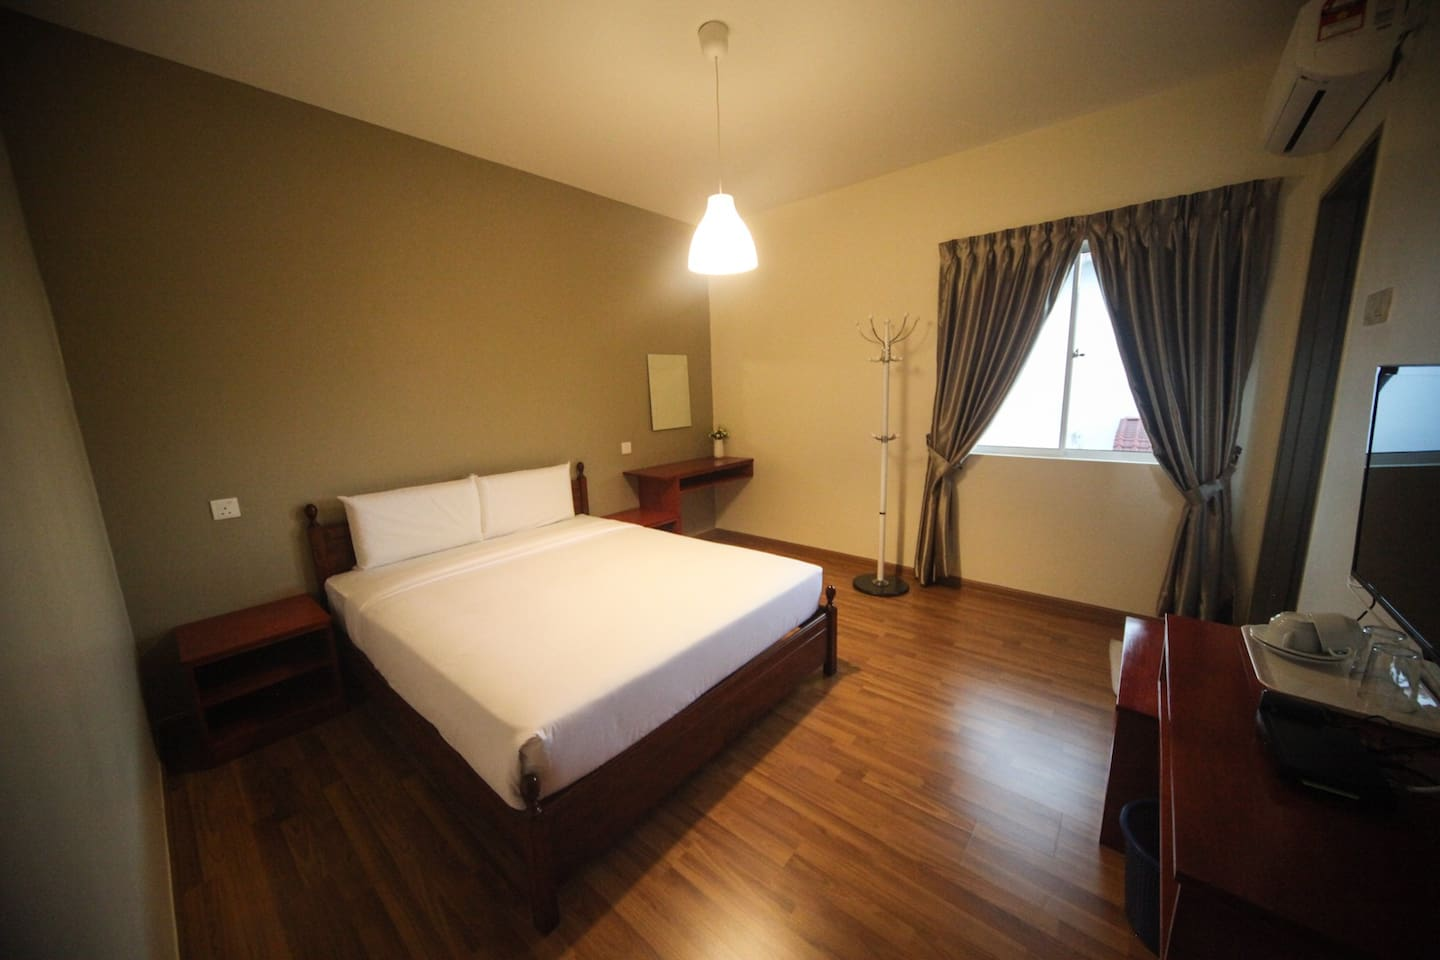 Air conditioned private room with attached bathroom